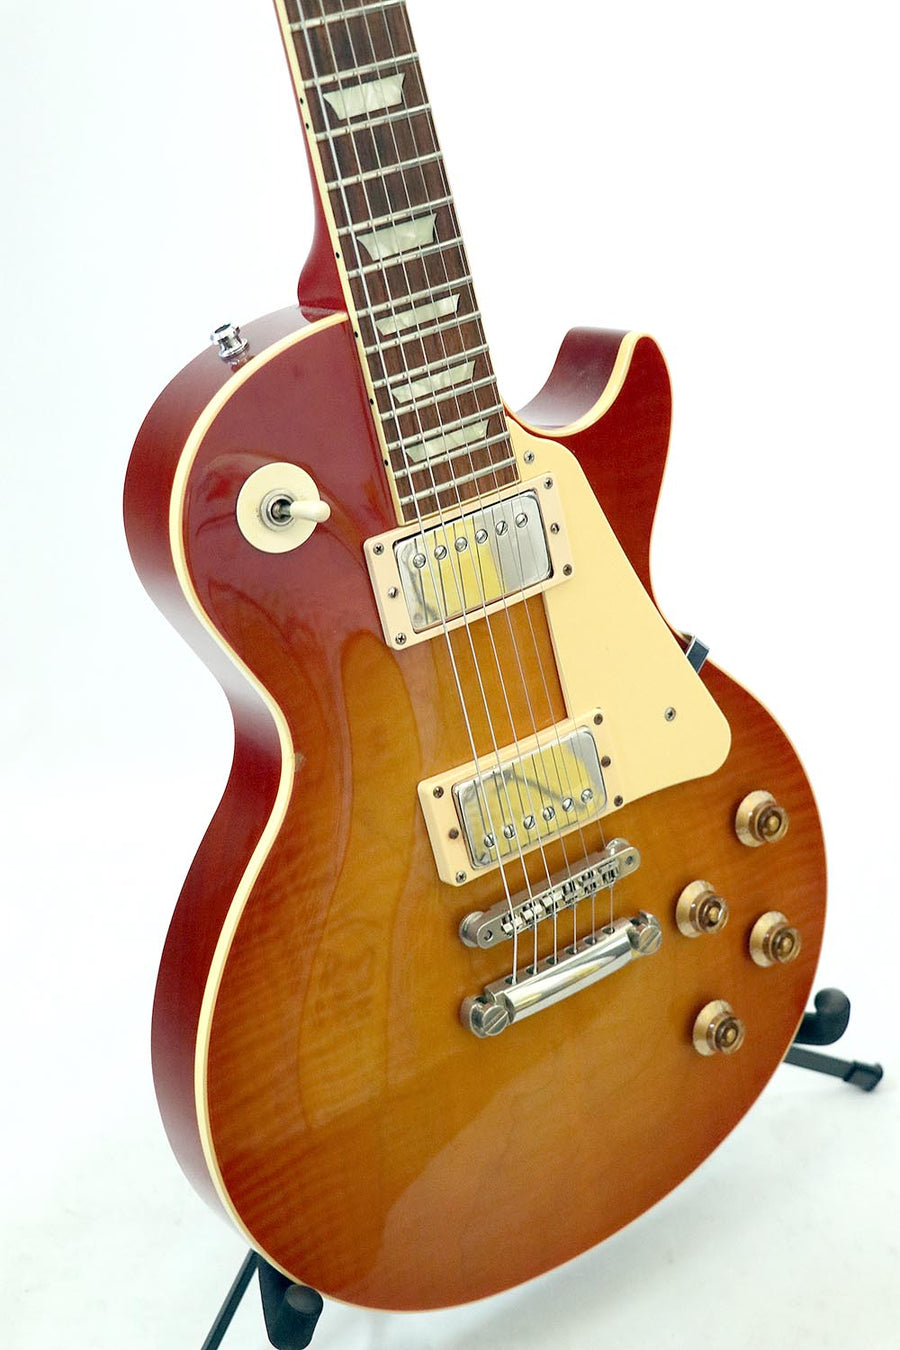 Navigator Les Paul with Bare Knuckle pickups